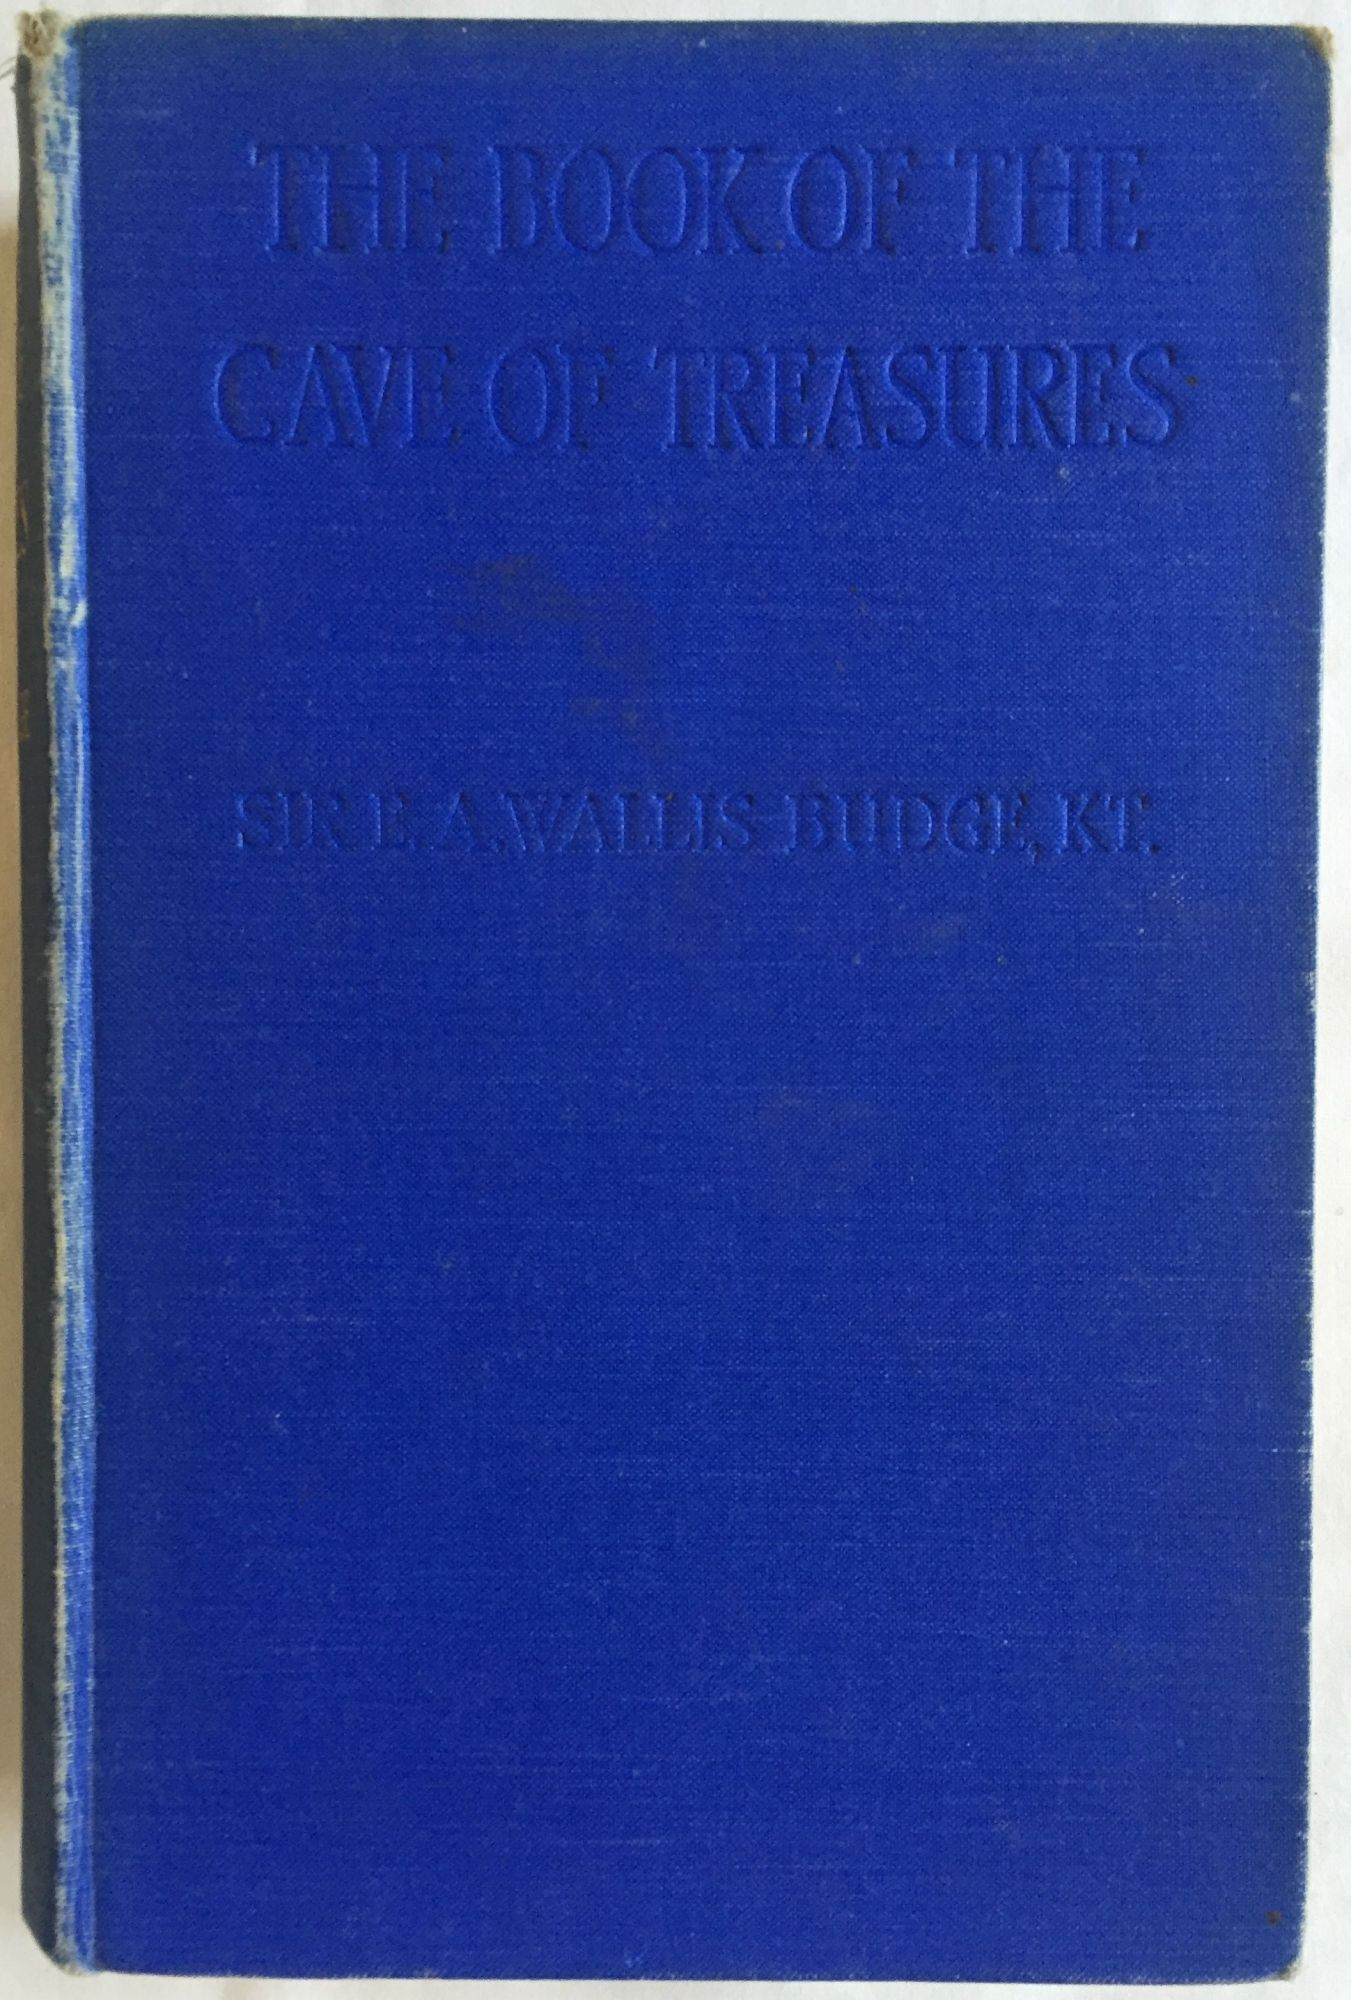 Book of Cave of Treasures Budge